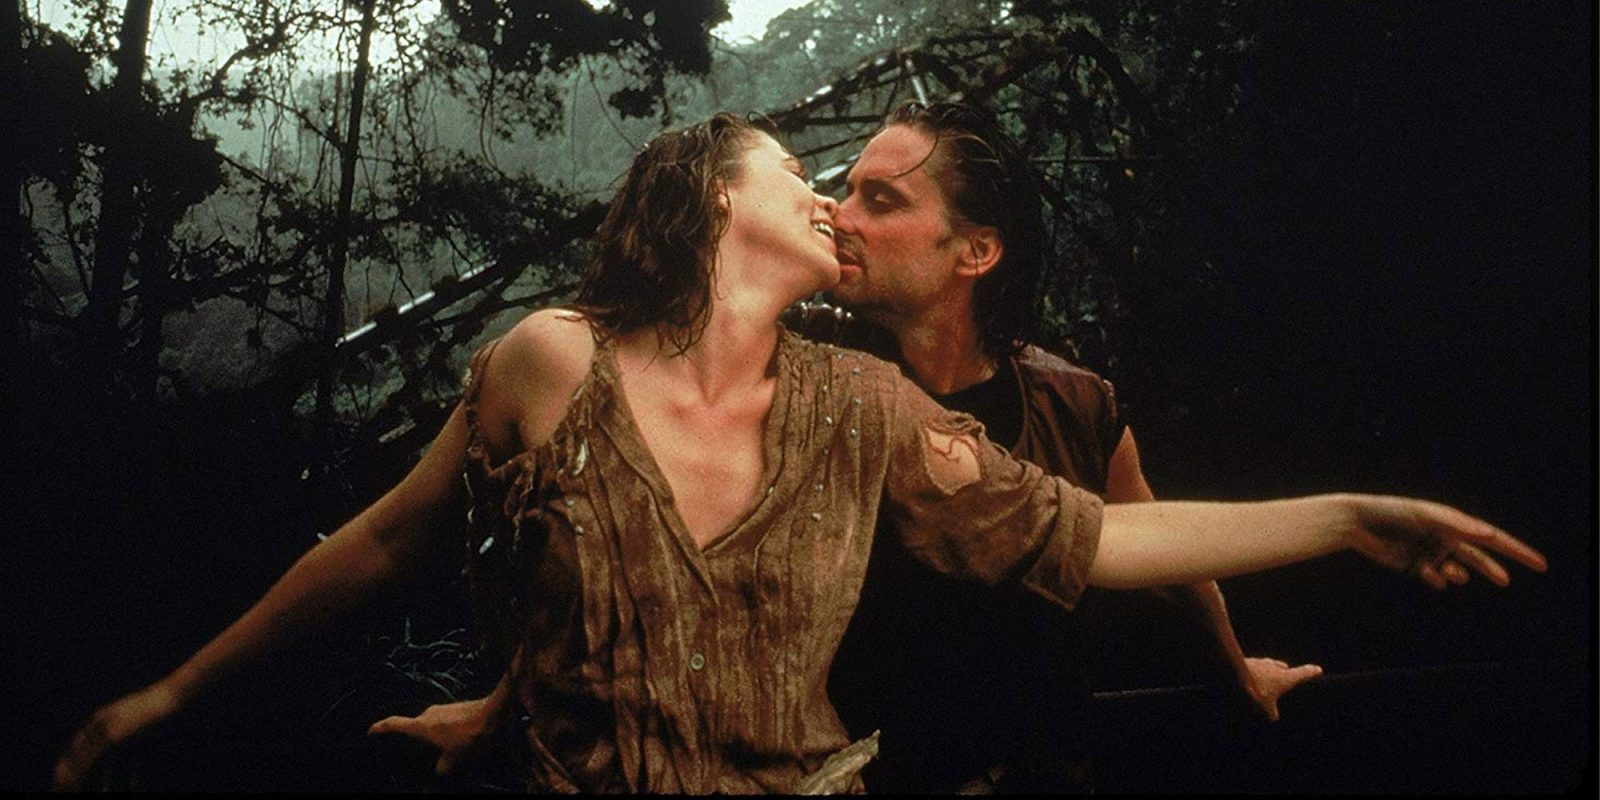 VUDU's $5 weekend sale features Romancing the Stone, Ted, Home Again, more